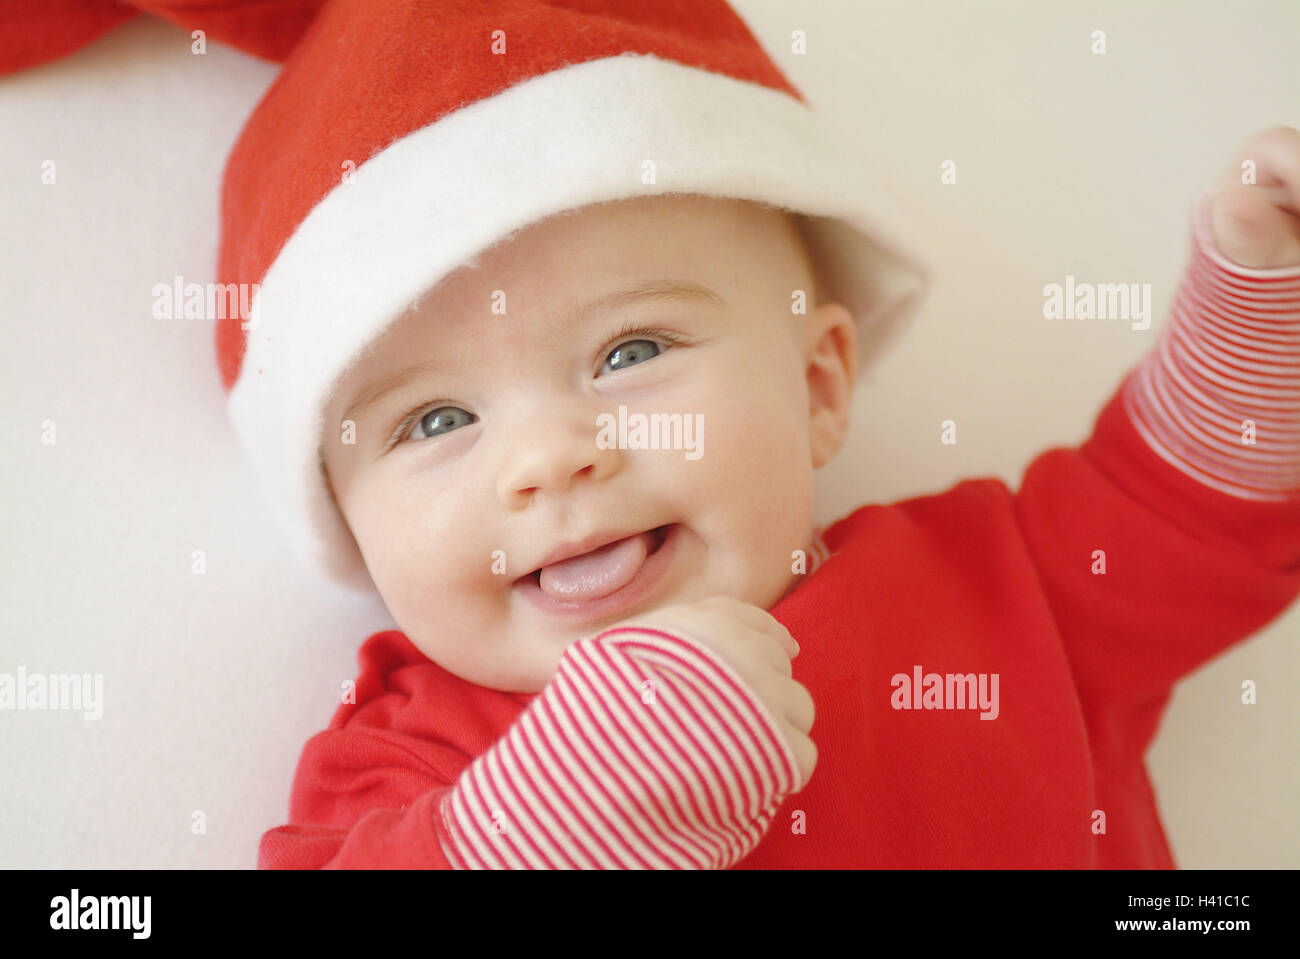 bd34dd8cc Baby, smile, lie, Christmas cap, portrait, from above, child Stock ...